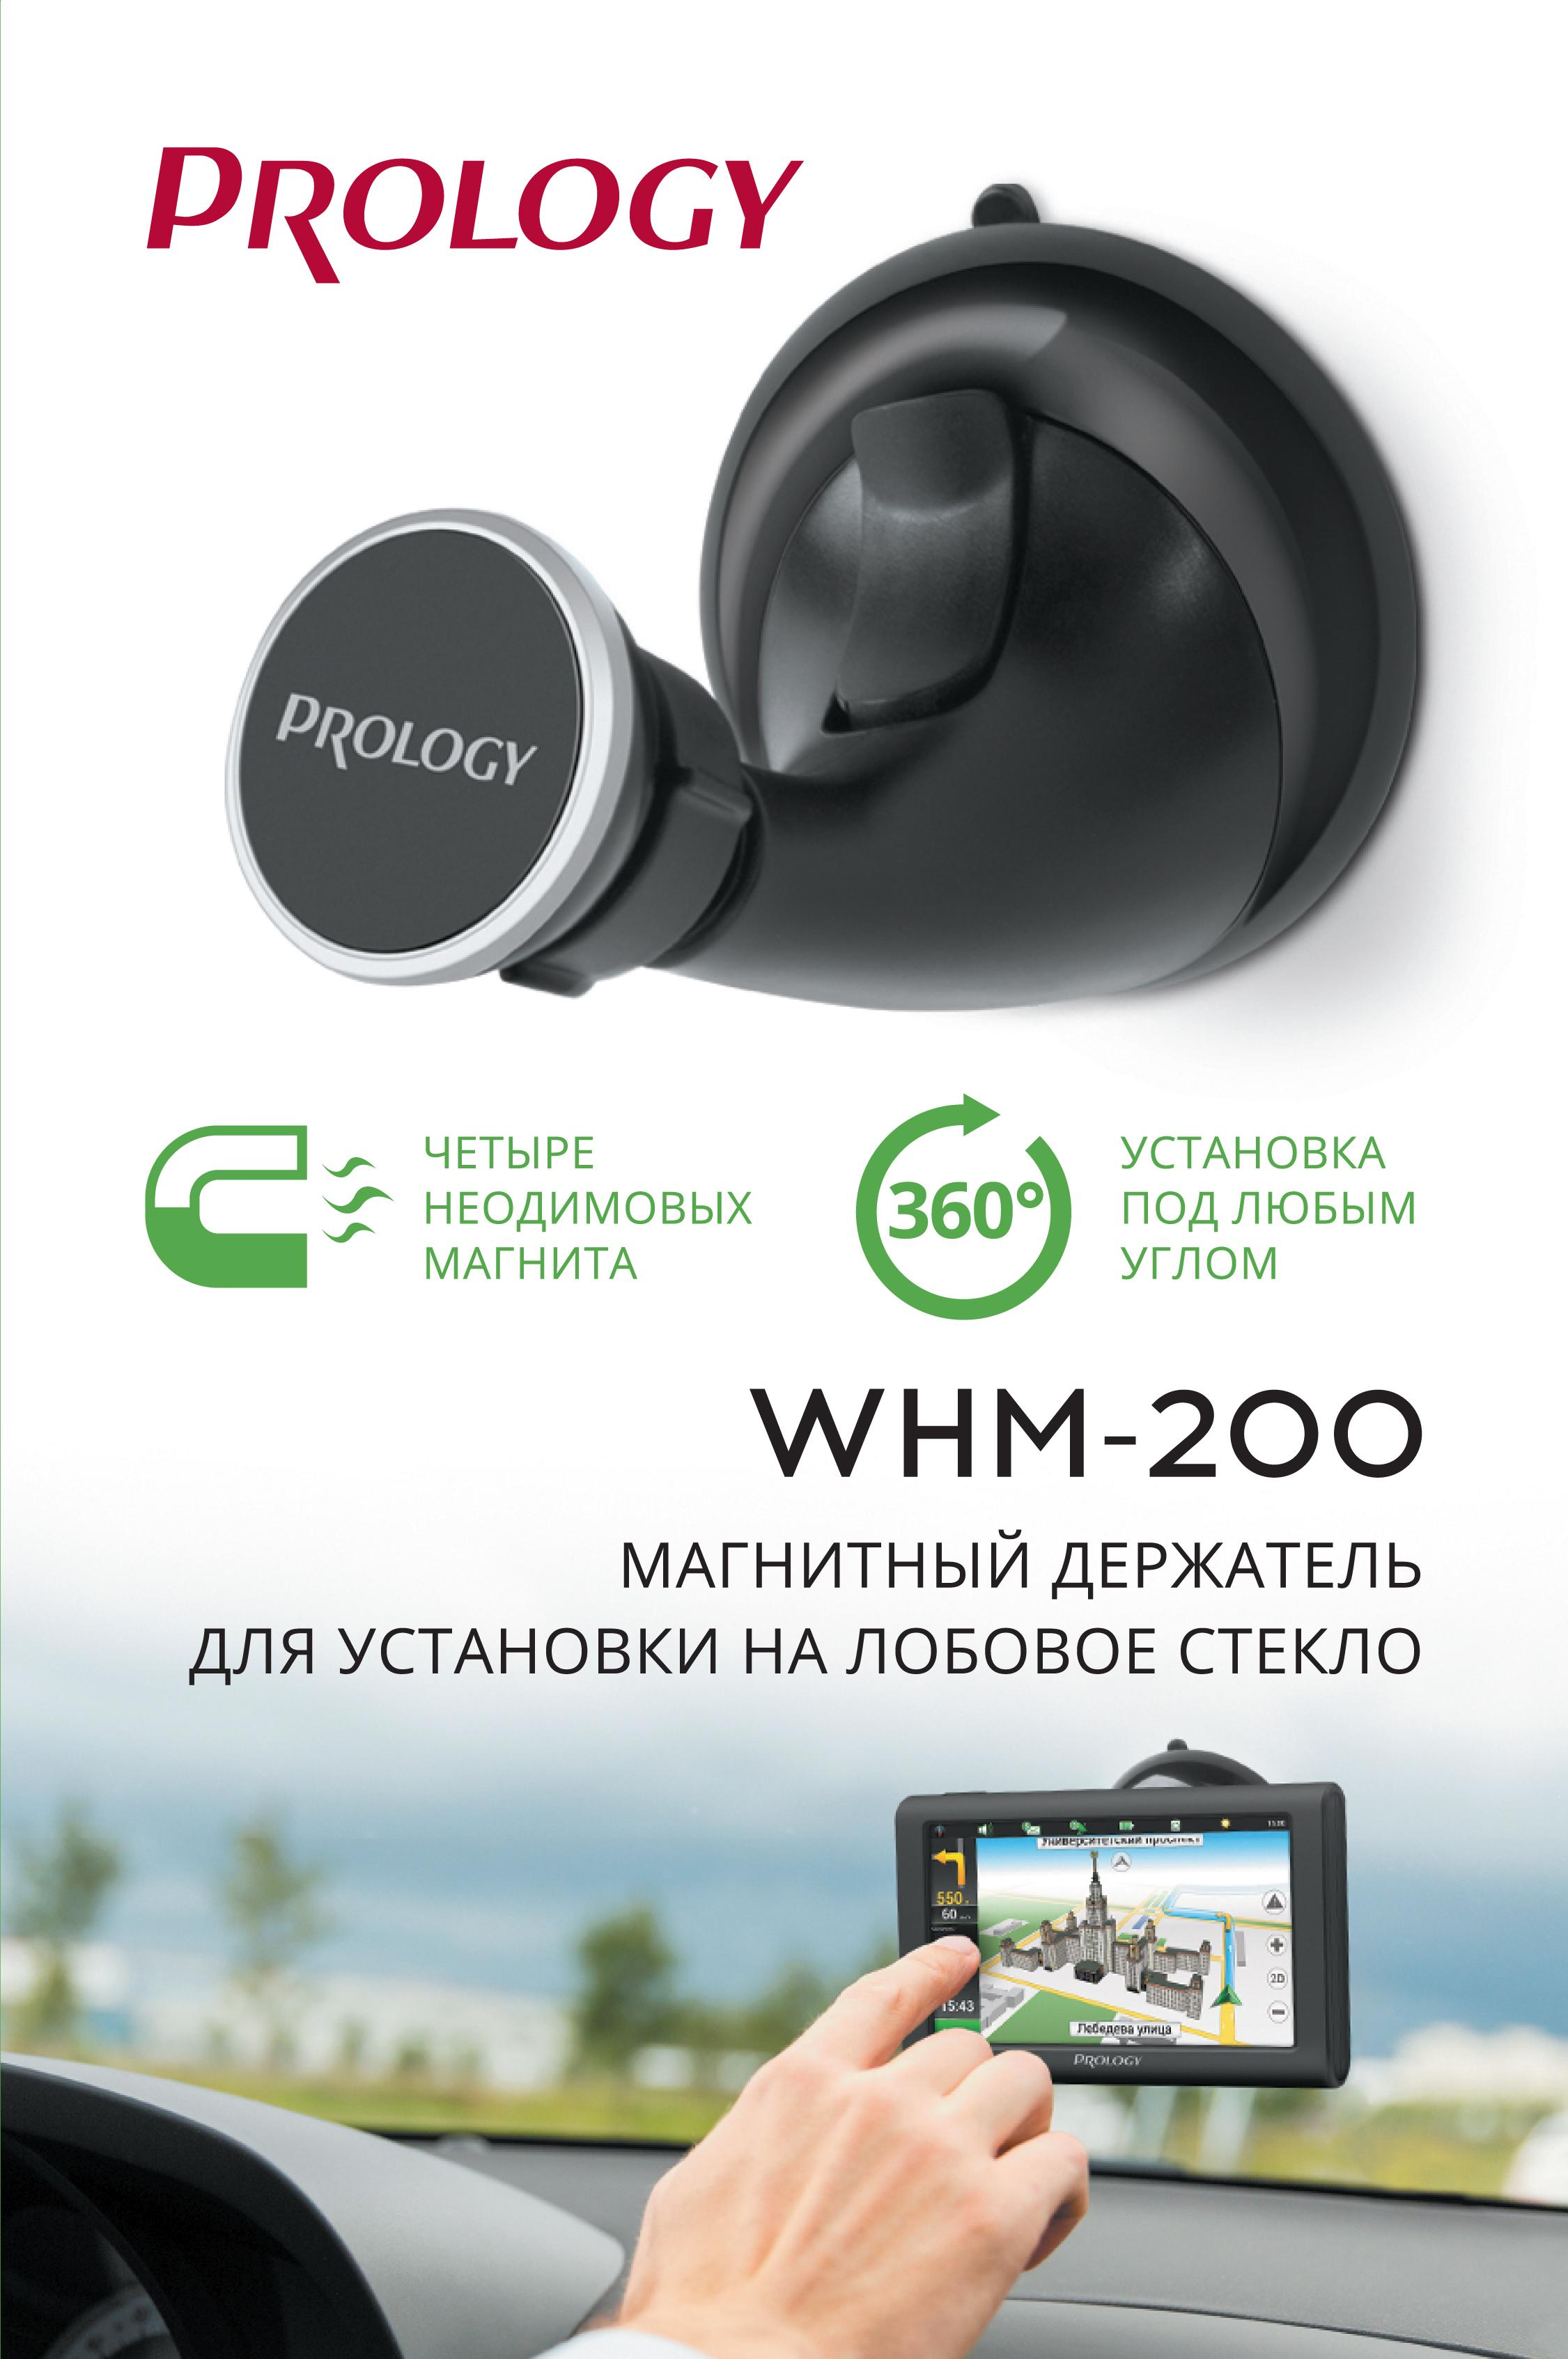 PROLOGY WHM-200